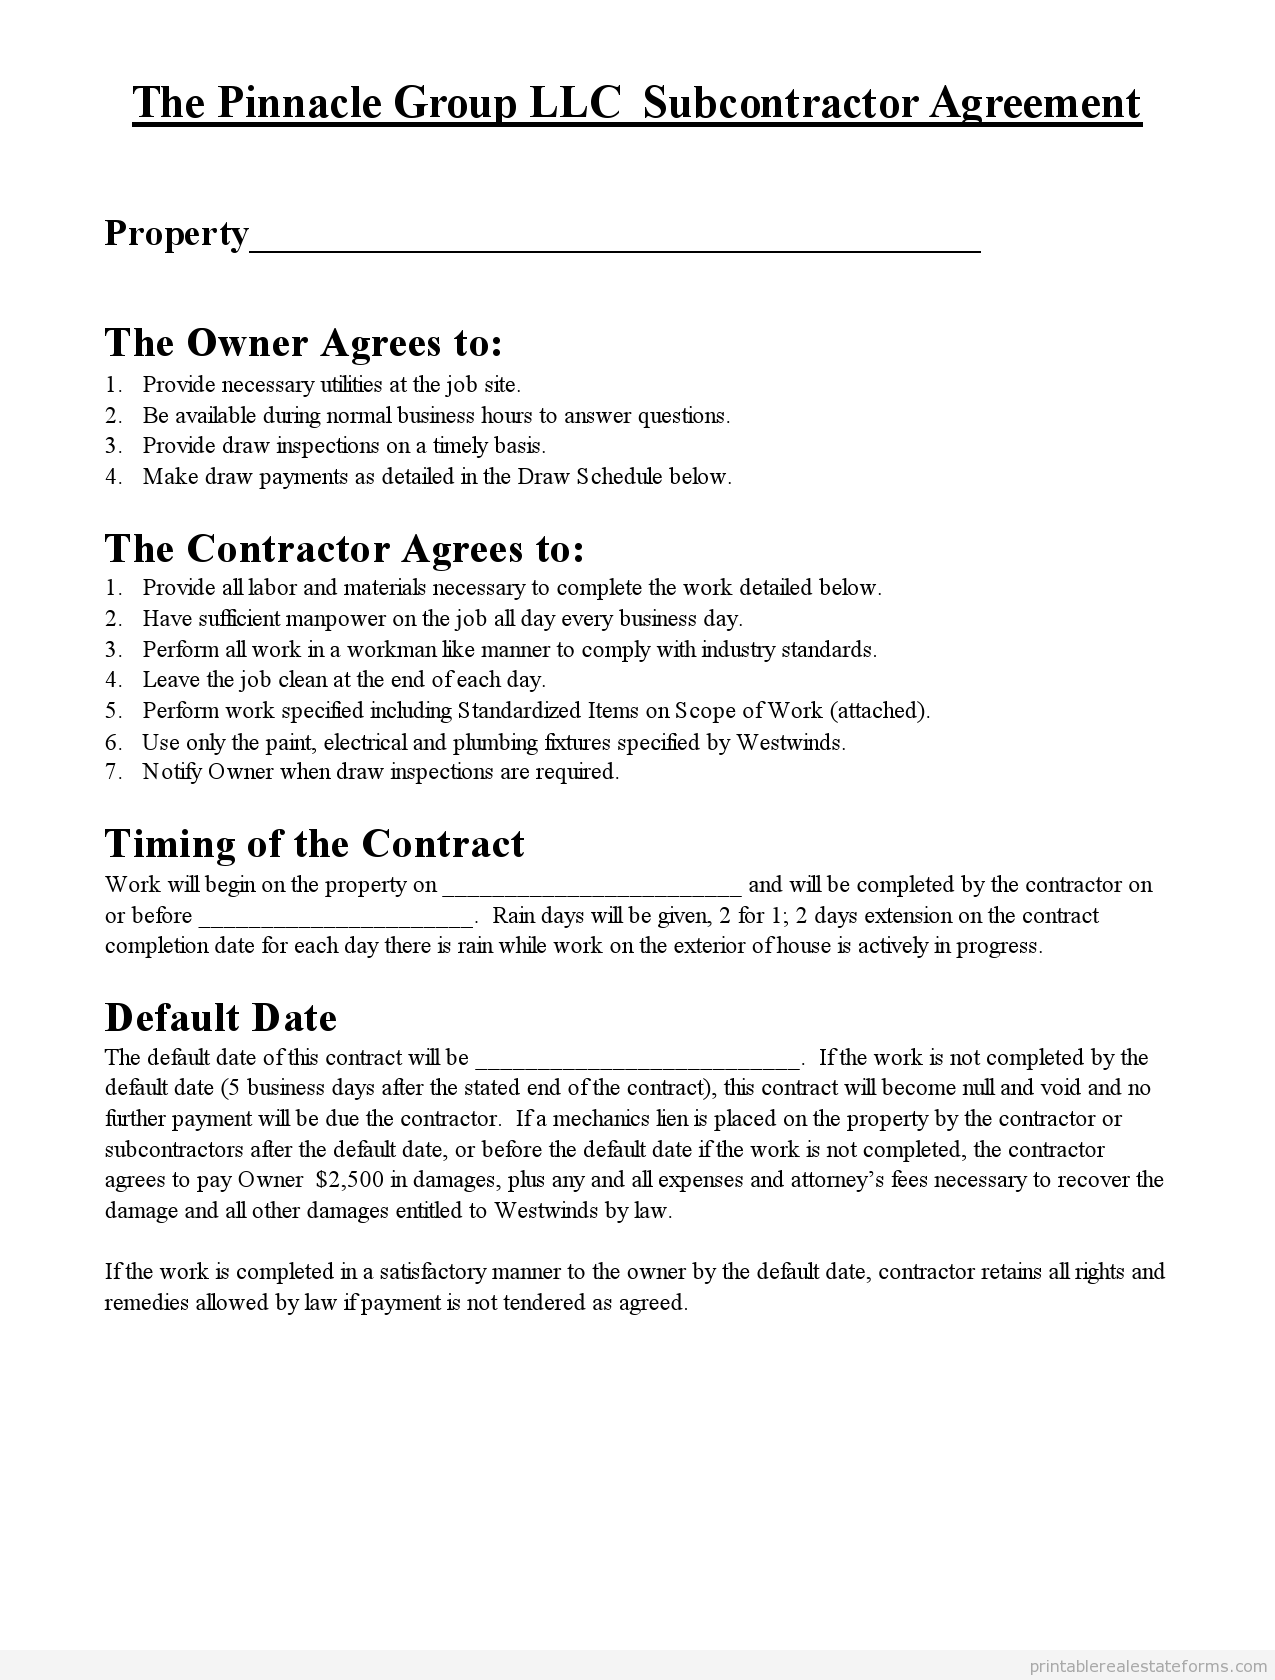 Free Printable subcontractor agreement Form – Subcontractor Agreement Template